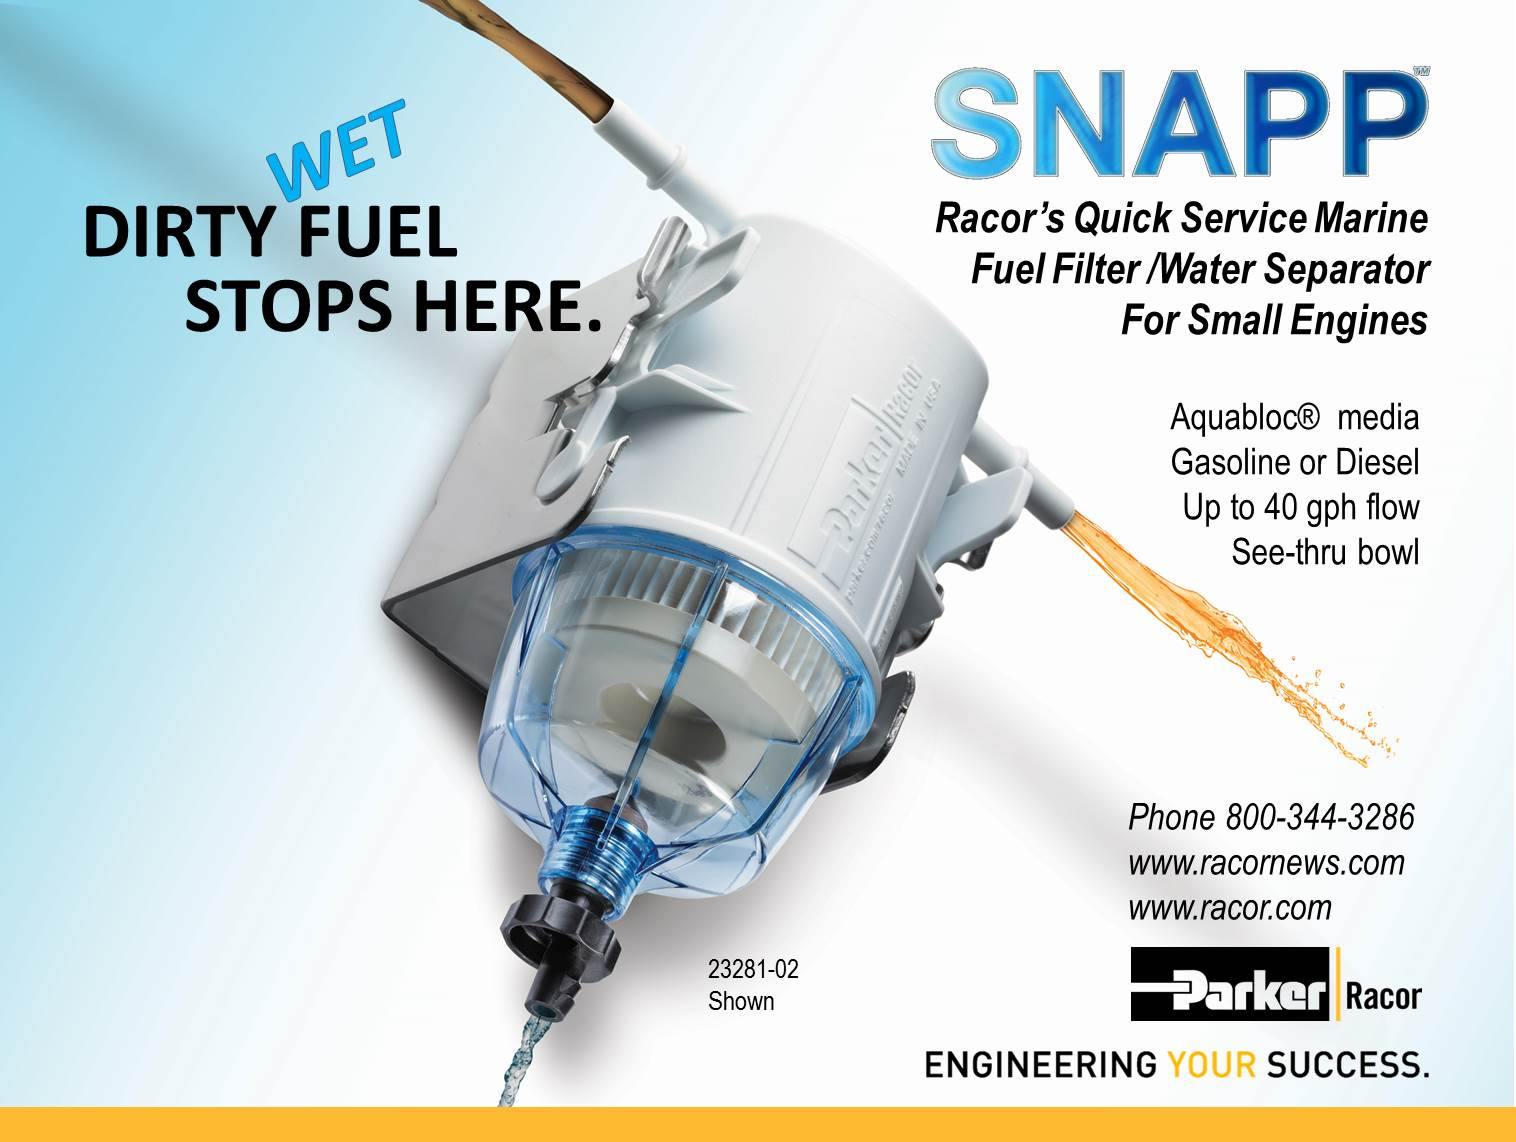 Dirty Wet Fuel Stops Here Snapp Racor News Small Engine Filter Installation